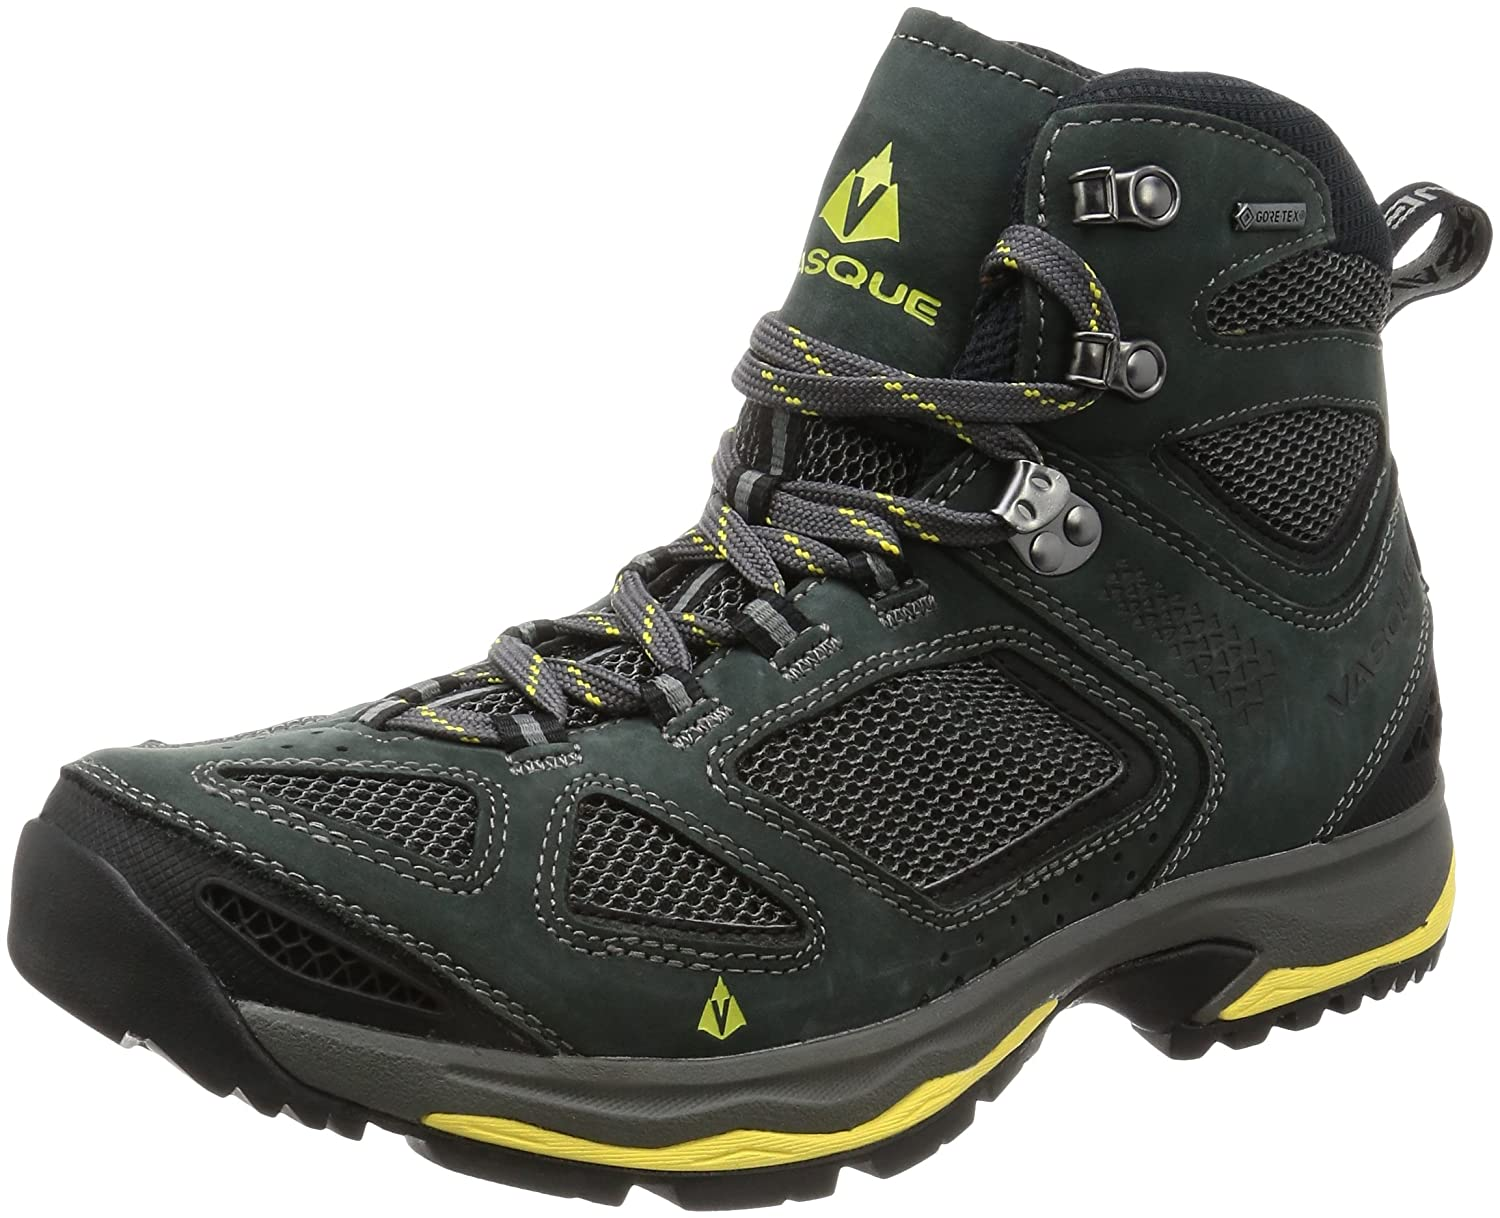 Vasque Menƒ_Ts Breeze III GTX Hiking Boots, Black Olive B01F5K13OQ 8 D(M) US|Magent / Yellow